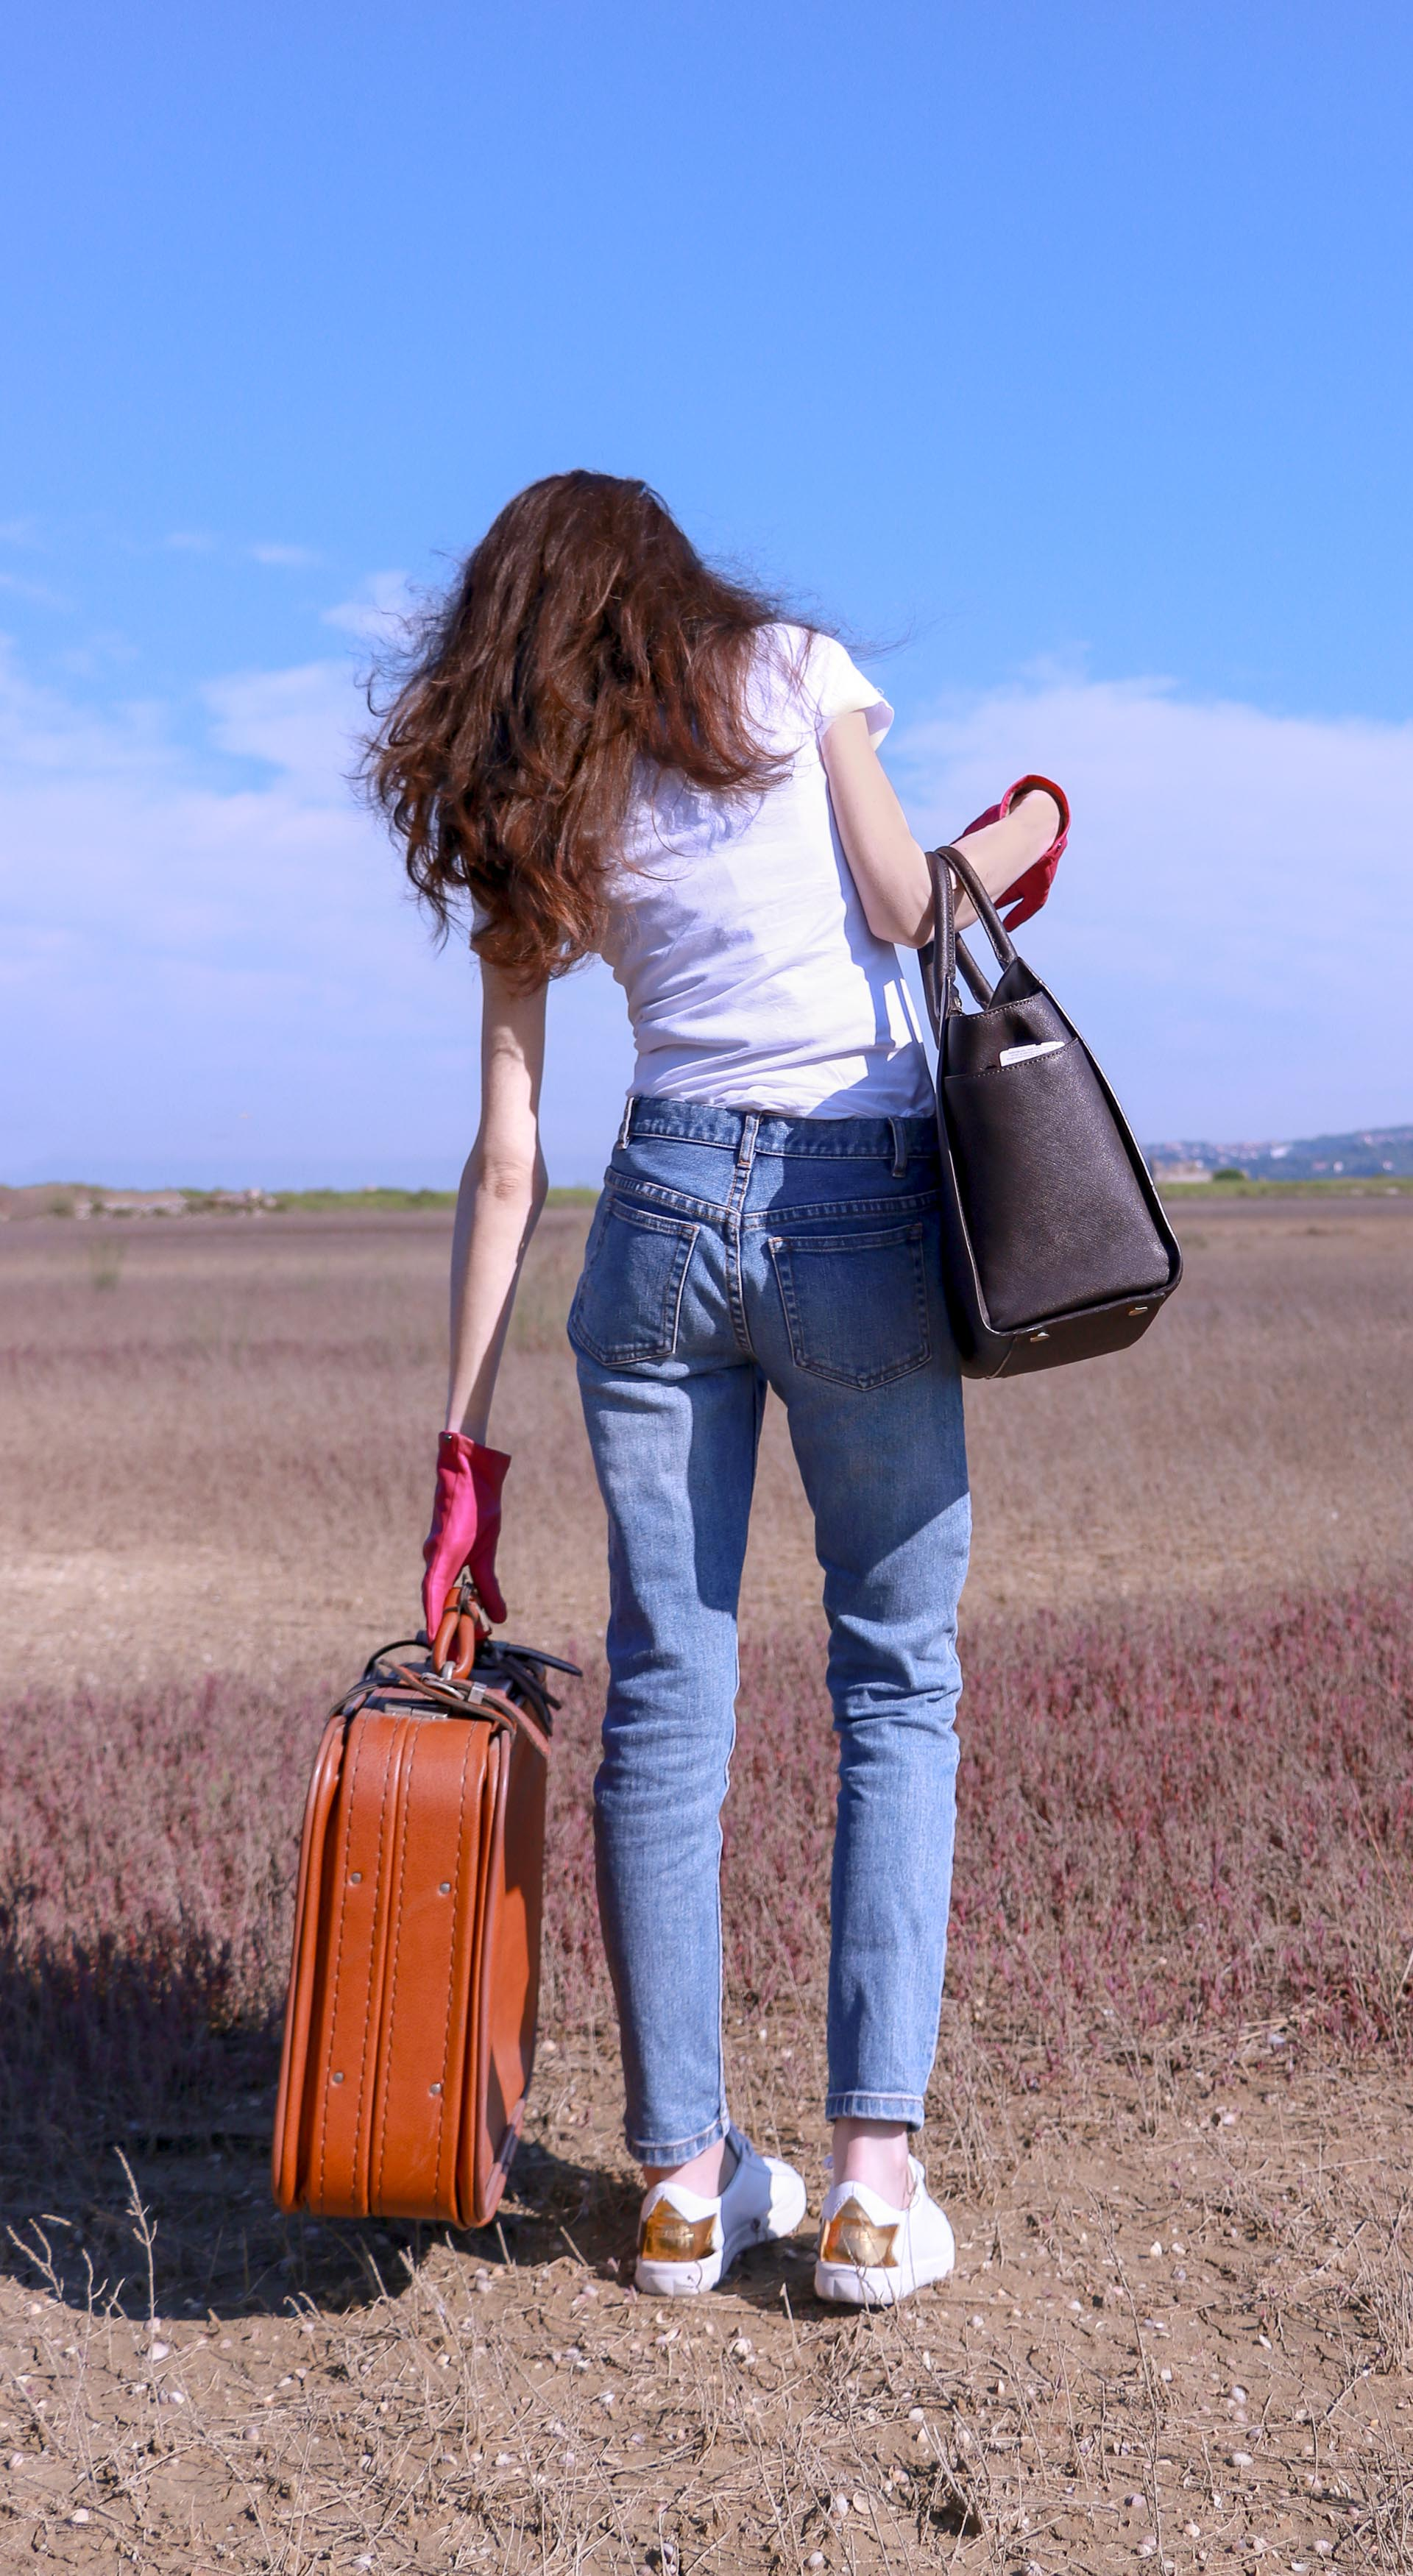 Popular fashion influencer Veronika Lipar of Brunette from Wall Street dressed in a.p.c. bleach denim jeans Diesel white sneakers white T-shirt pink leather gloves carrying Michael Kors sachets bag picking up retro suitcase standing in the middle of nowhere